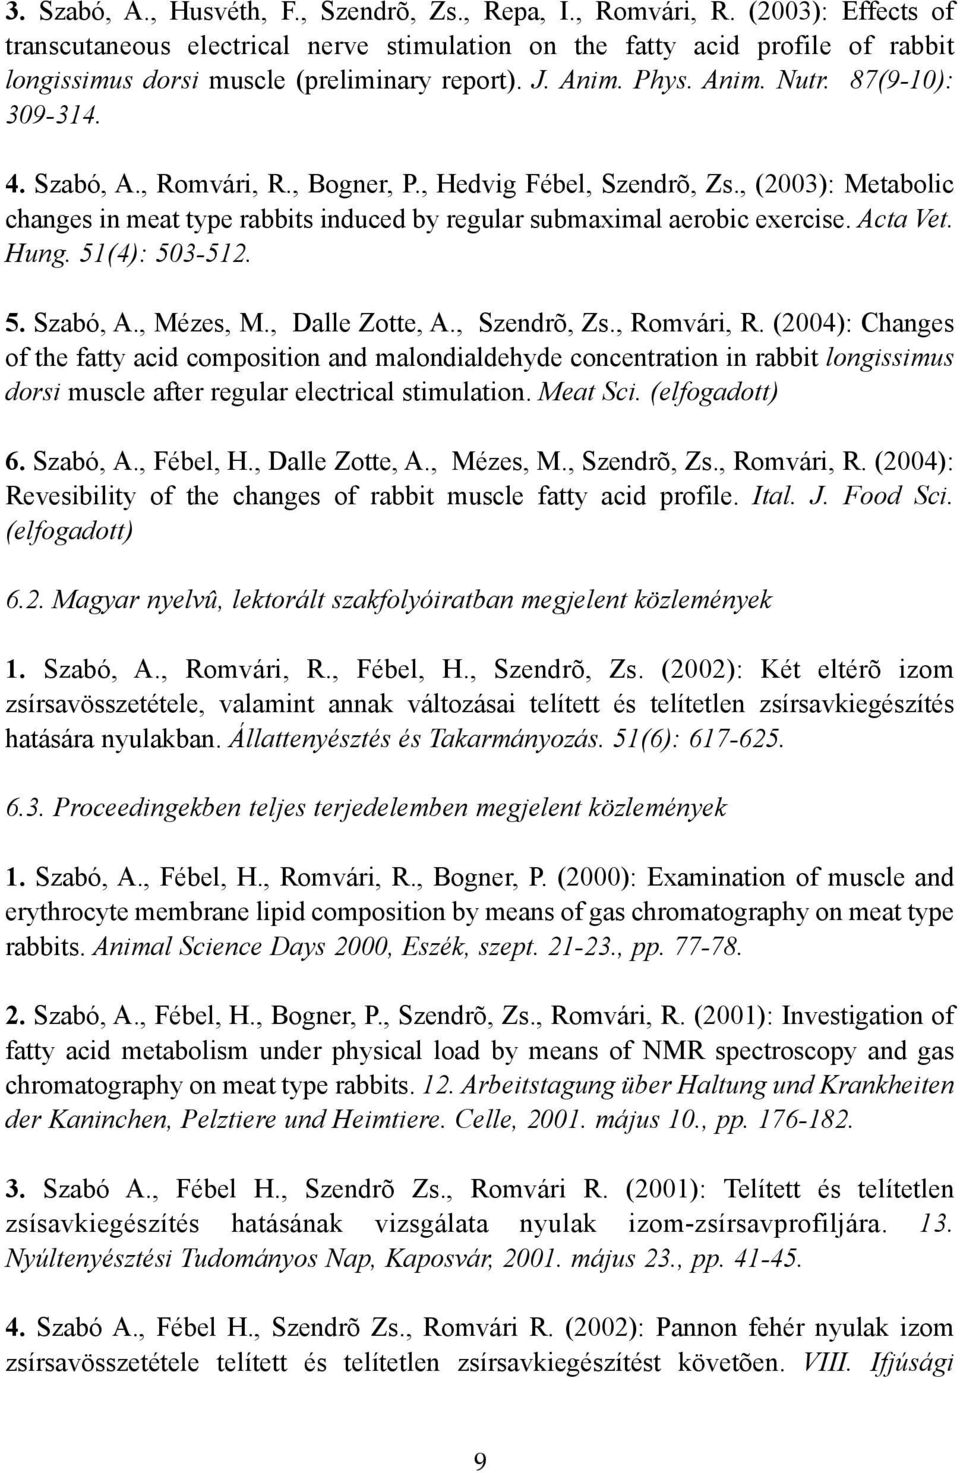 Szabó, A., Romvári, R., Bogner, P., Hedvig Fébel, Szendrõ, Zs., (2003): Metabolic changes in meat type rabbits induced by regular submaximal aerobic exercise. Acta Vet. Hung. 51(4): 503-512. 5. Szabó, A.